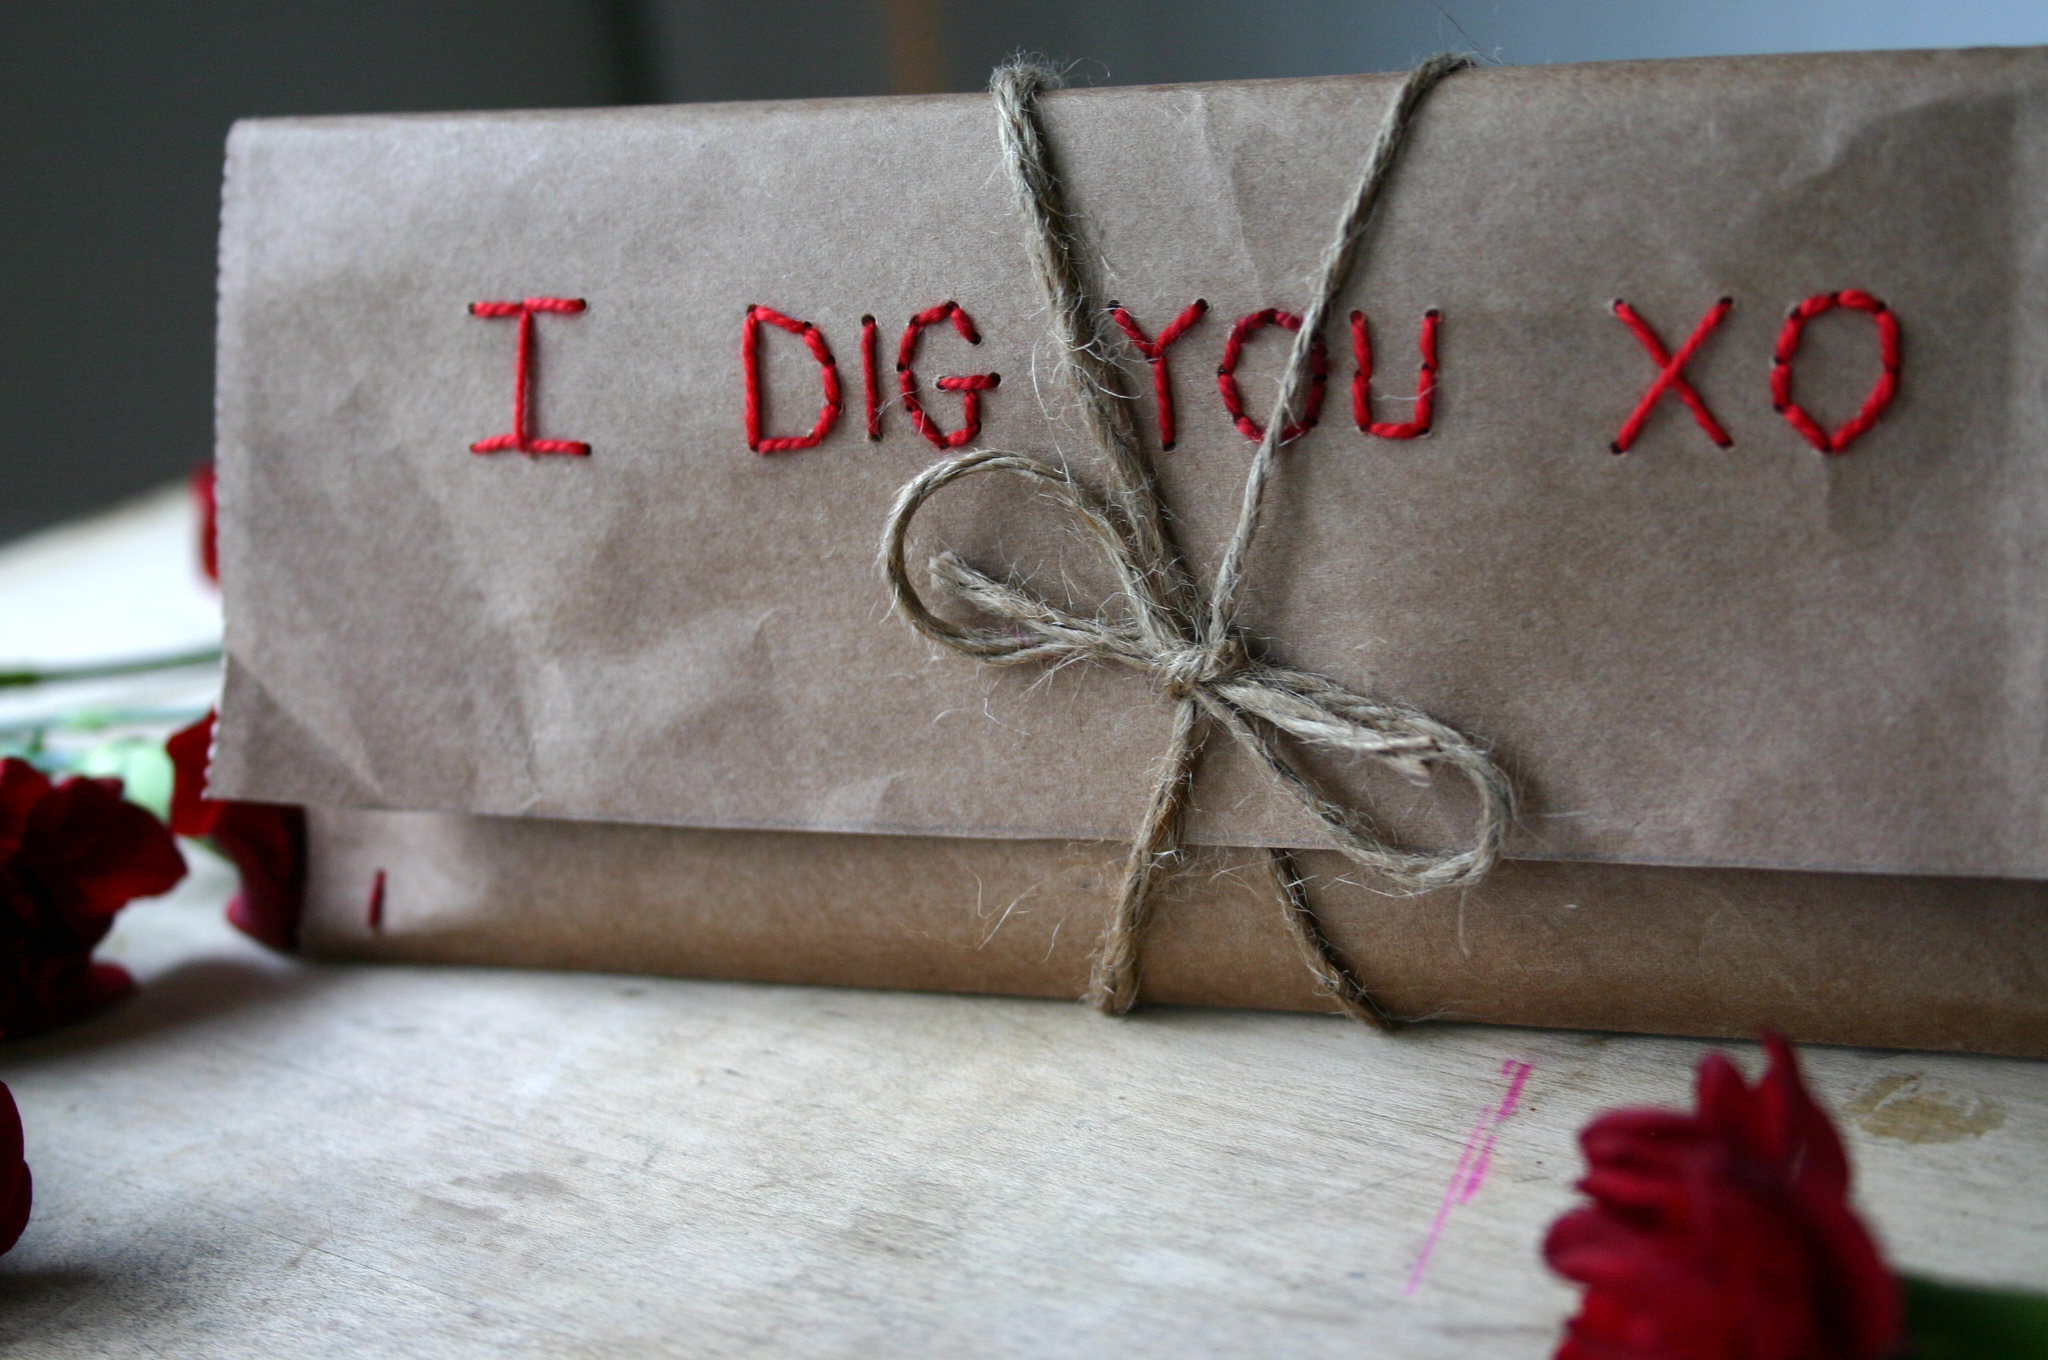 A chocolate bar is wrapped in an embroidered paper bag envelope to make a sweet and thoughtful Valentine.